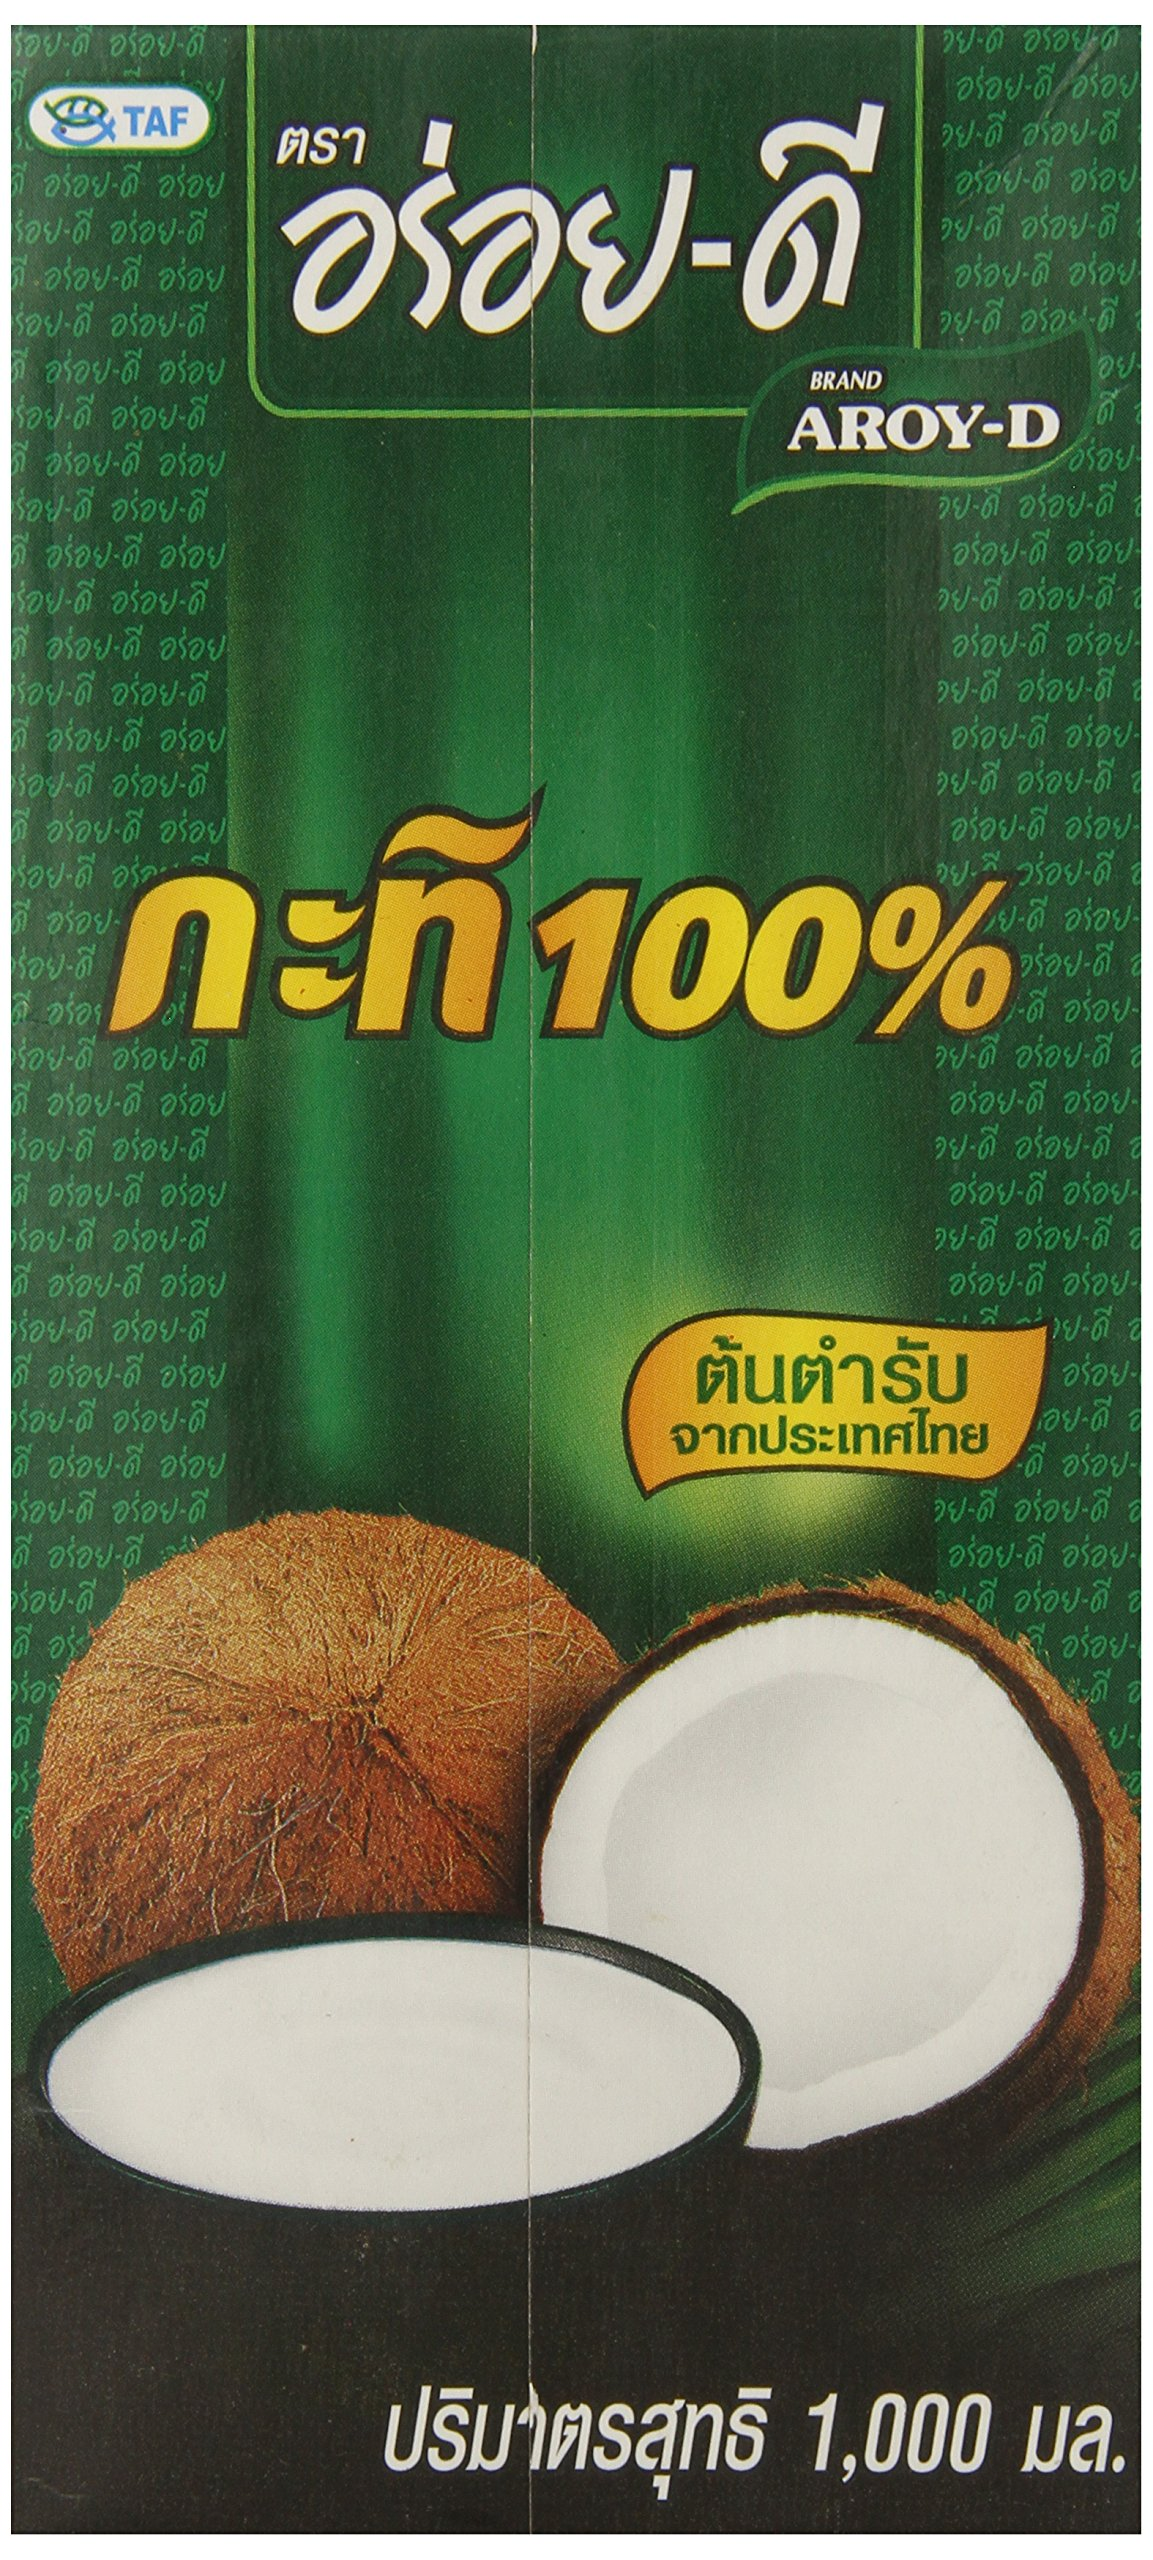 AROY-D 100% Coconut Milk - 33.8 oz packages (3-pack) by Aroy-D (Image #4)